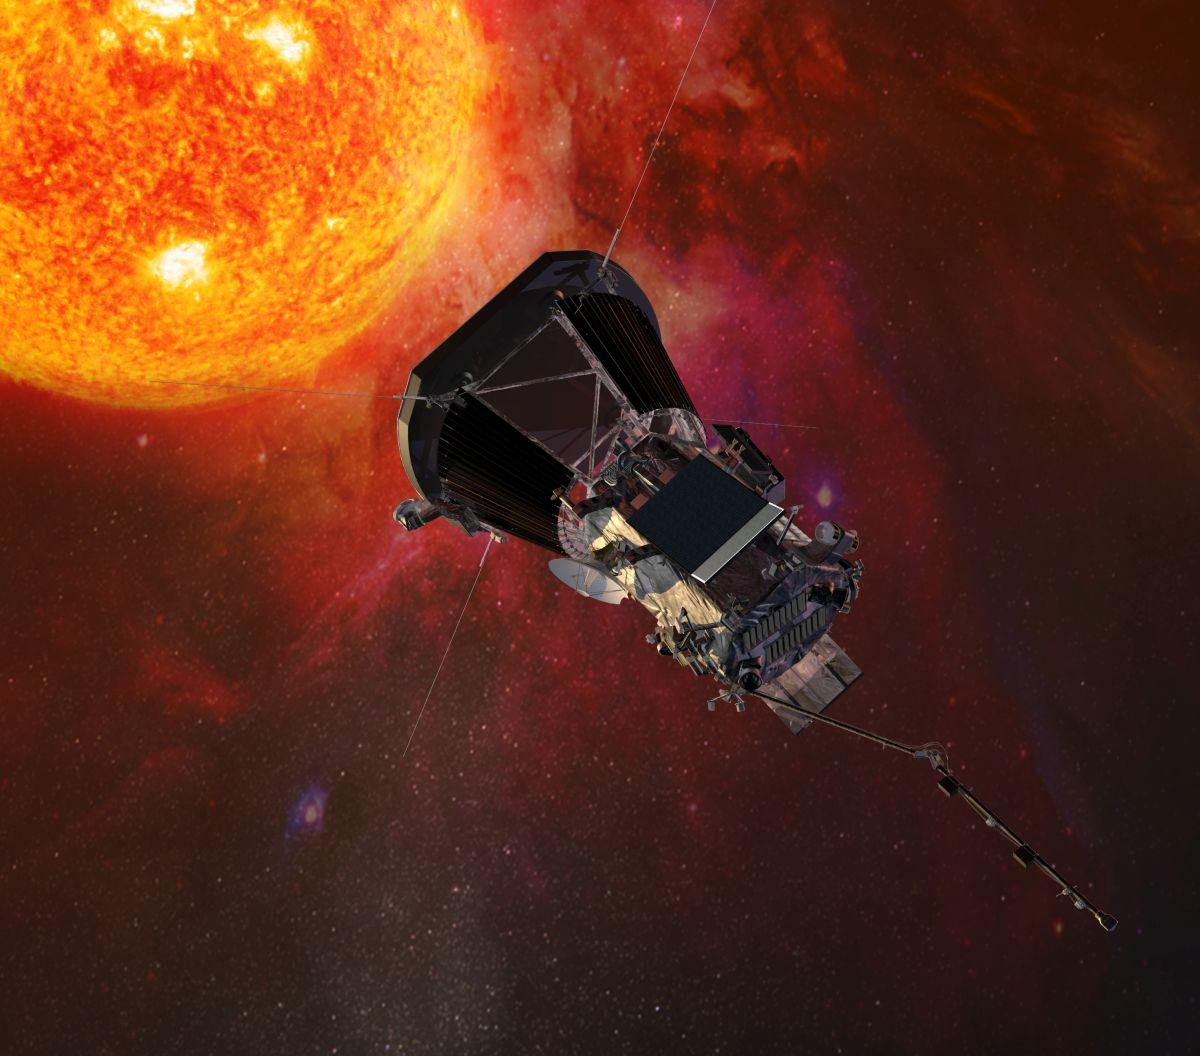 Космический зонд для изучения Солнца Parker Solar Probe / фото Johns Hopkins University Applied Physics Laboratory